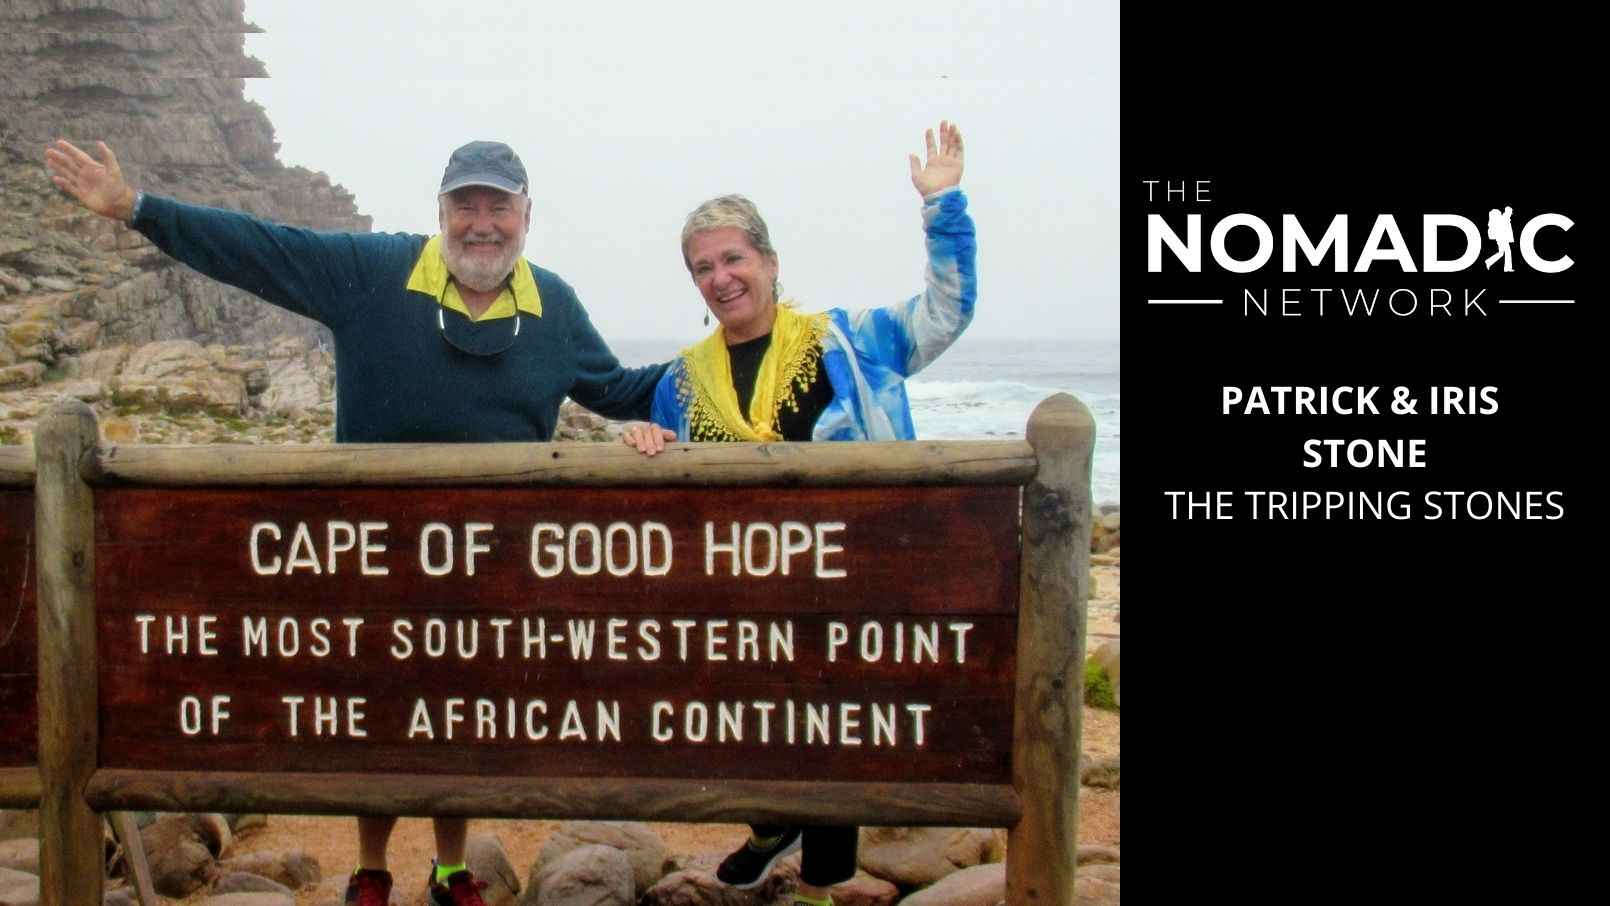 A retired couple posing at the Cape of Good Hope